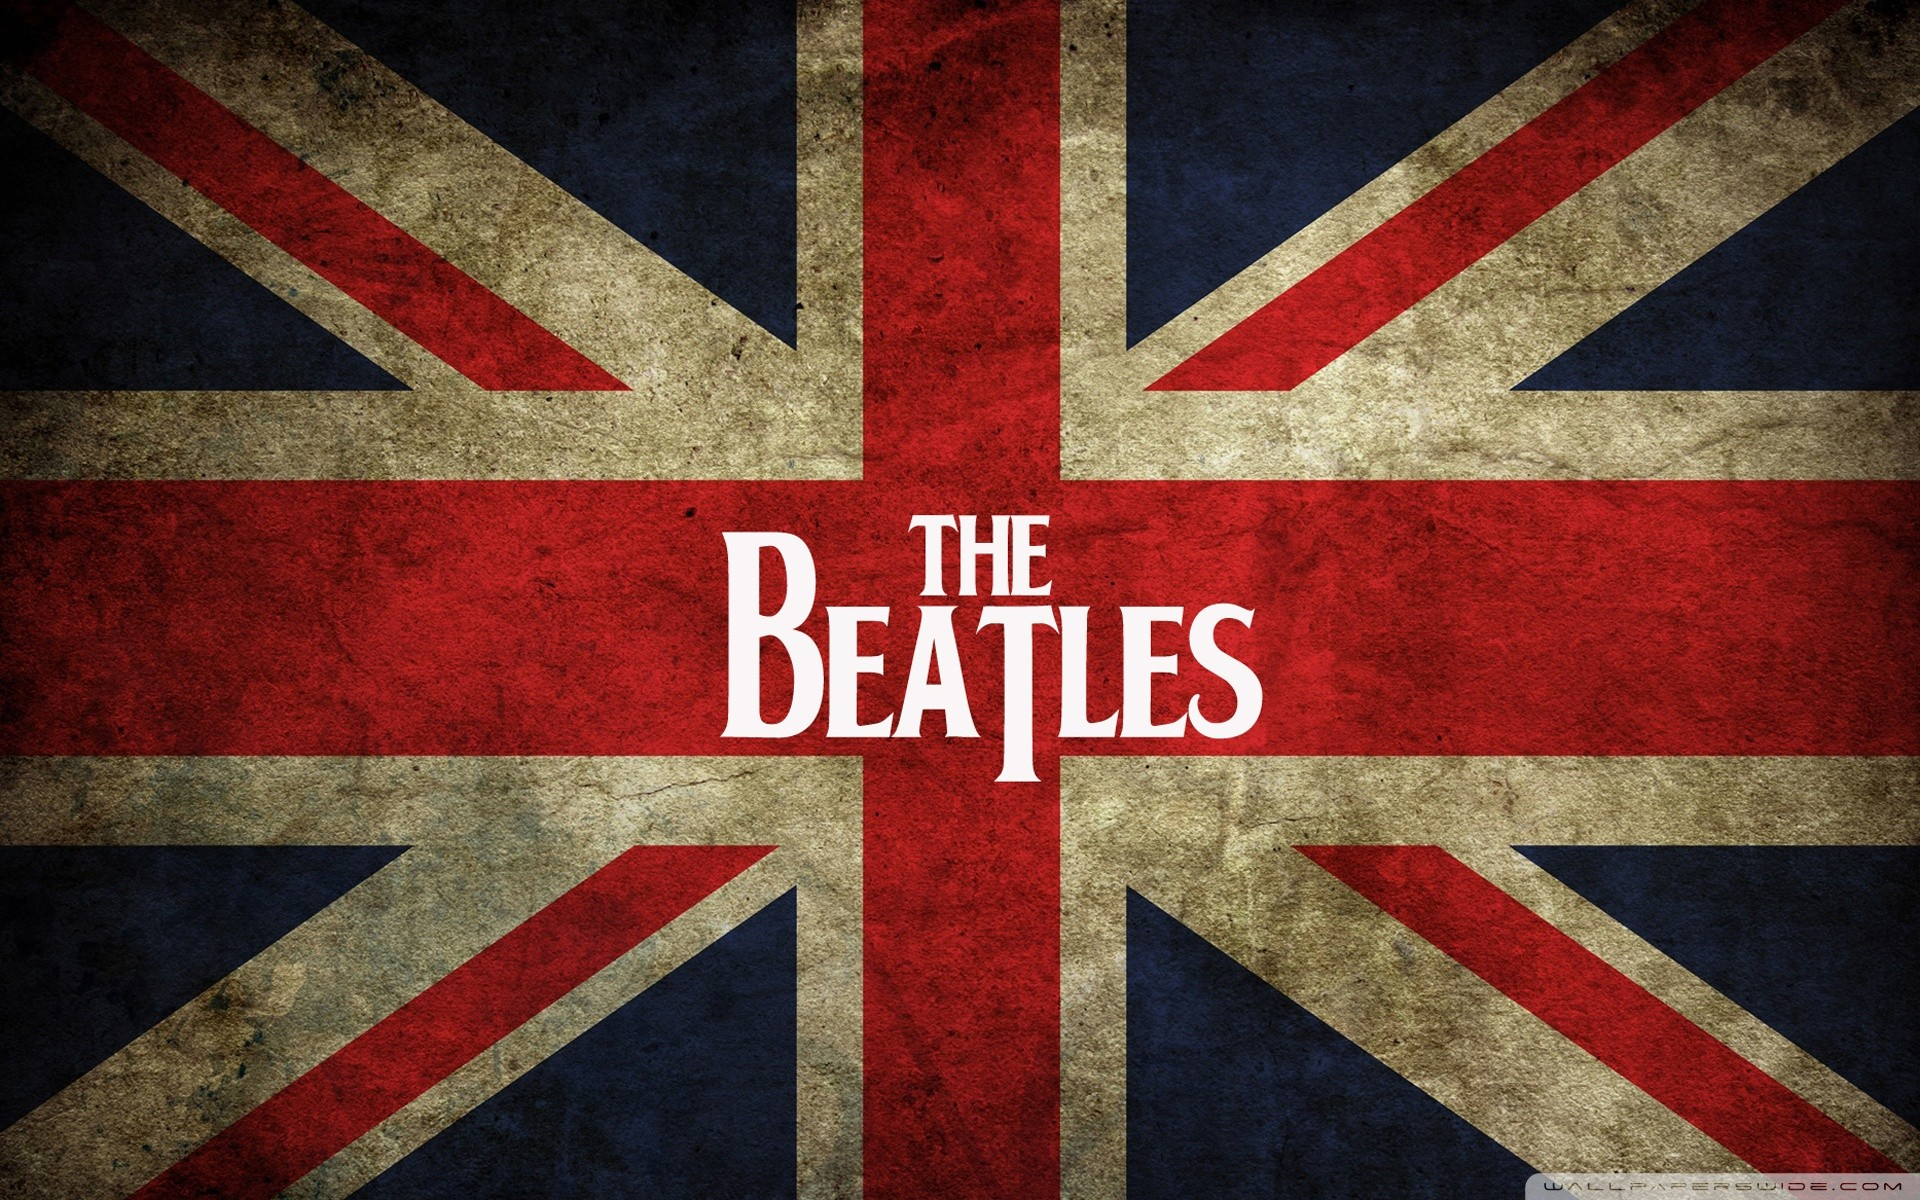 Wallpaper iphone uk - The Beatles Wallpaper 1920x1200 The Beatles John Lennon George